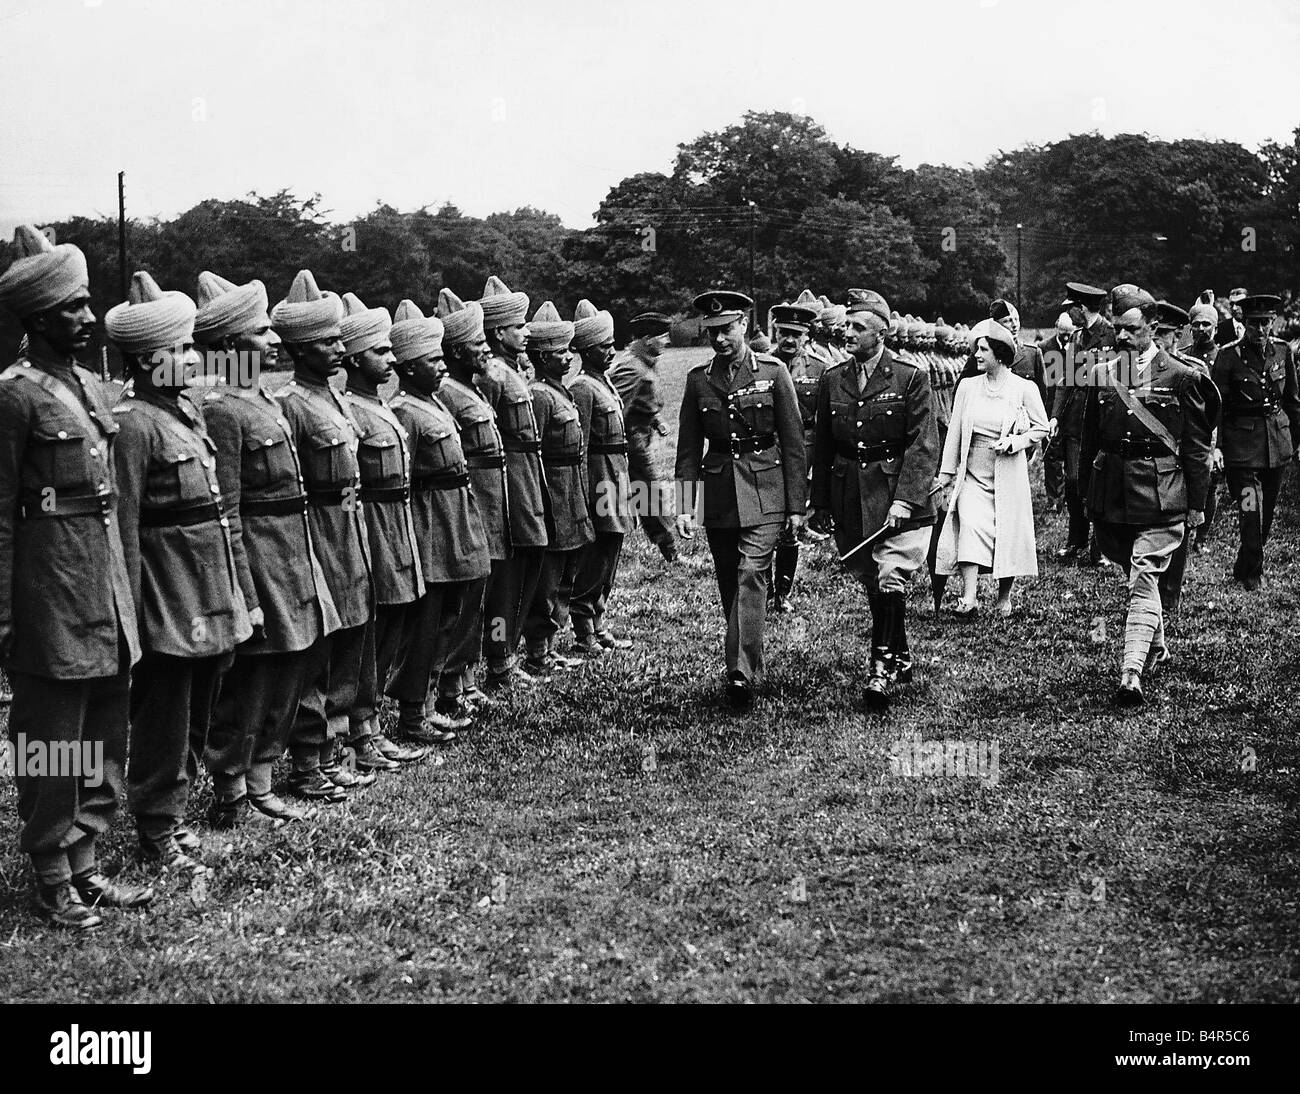 Queen Mother with King George VI at a camp for Indian Troops in Derbyshire talking to Major R W Hills - Stock Image